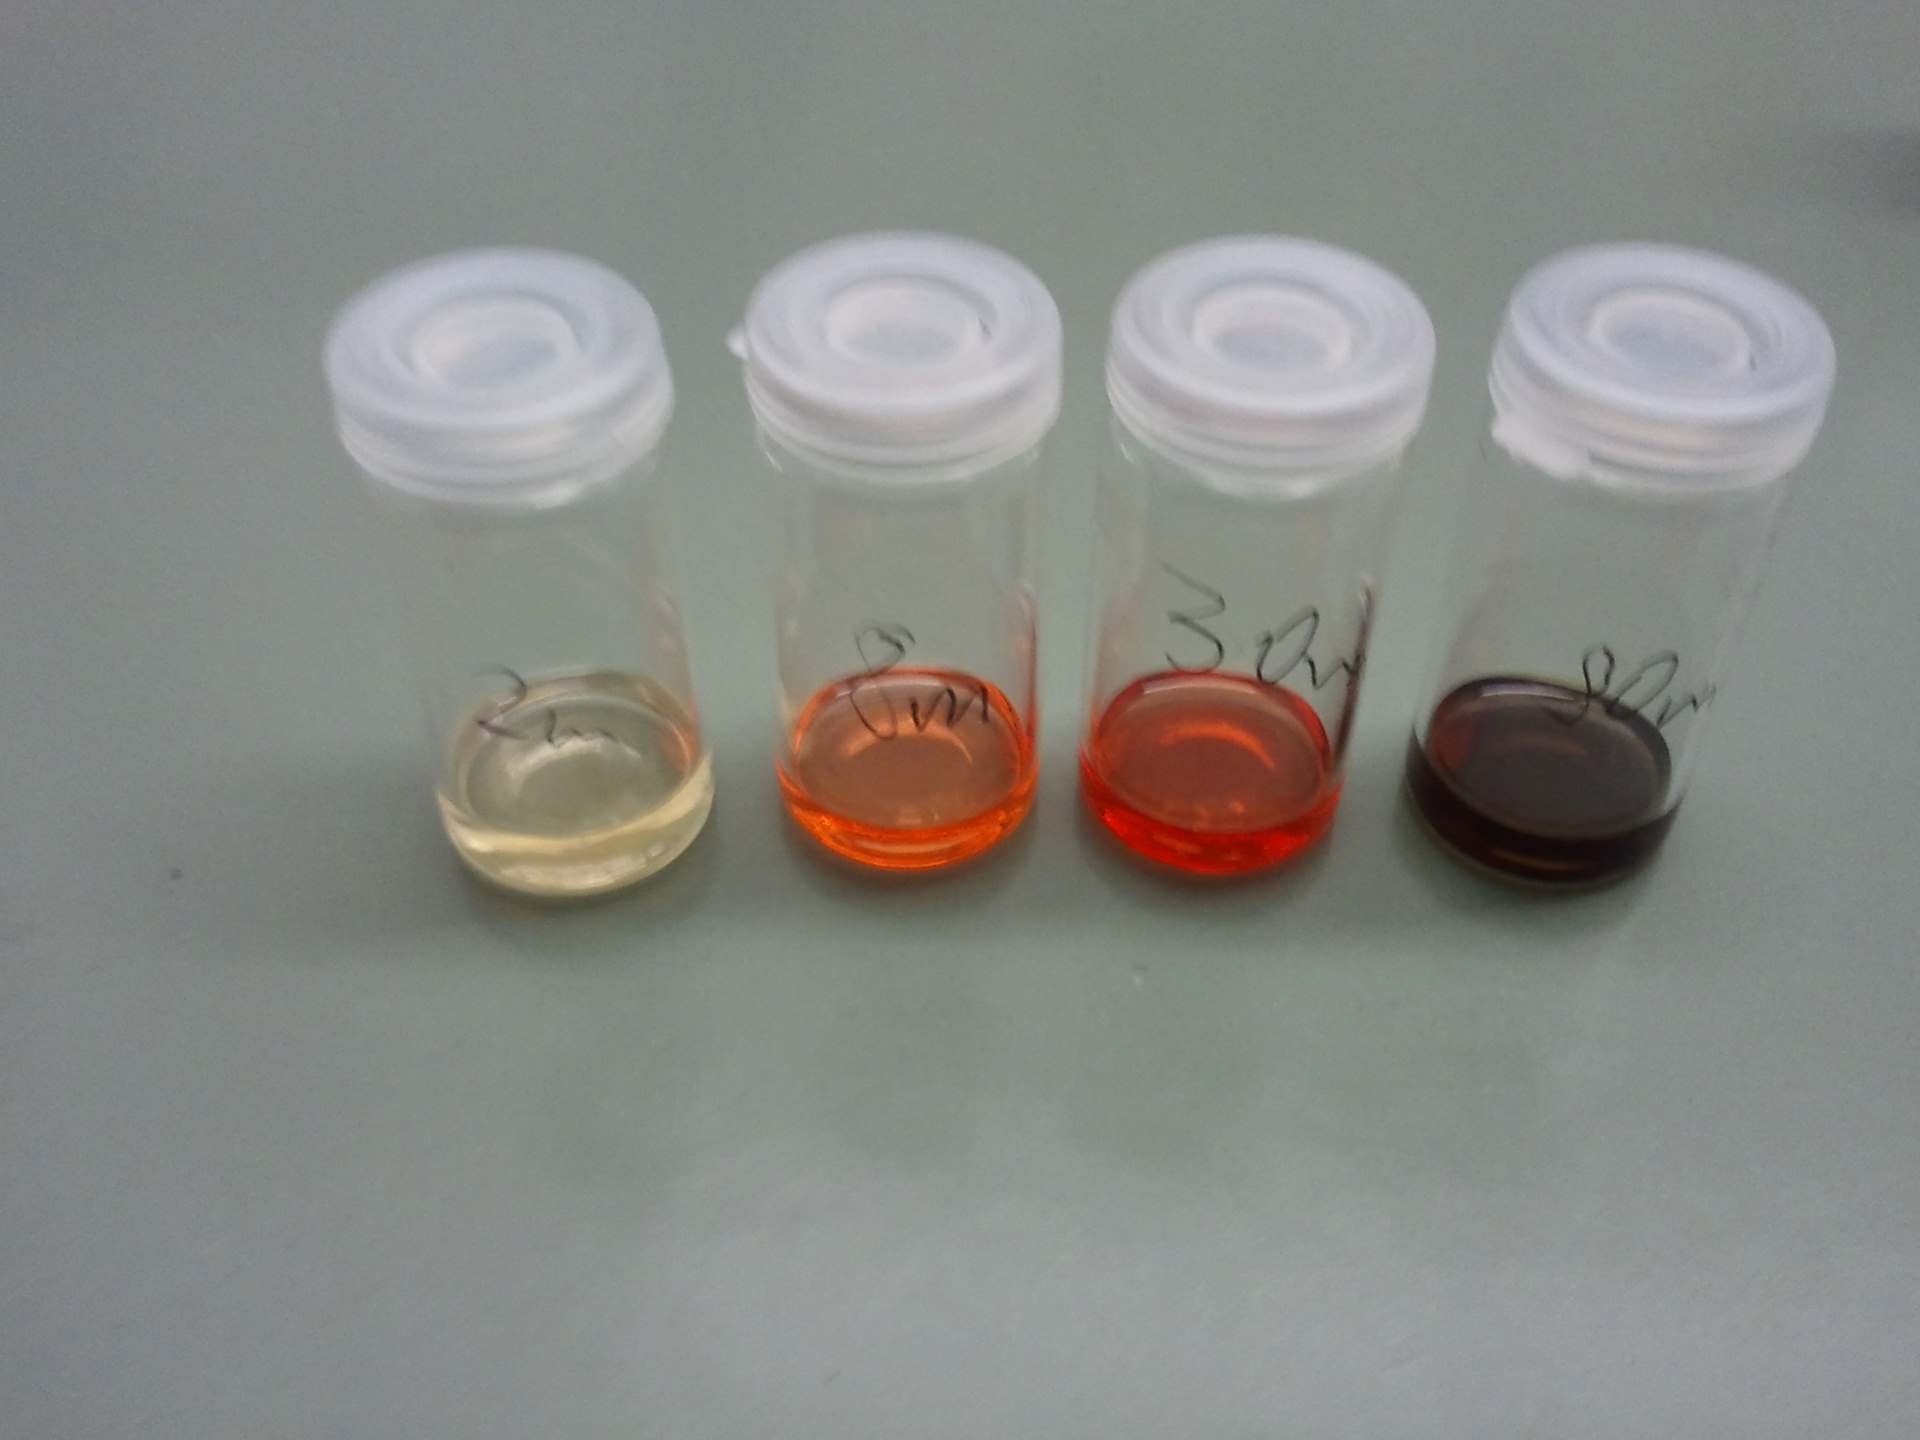 CdSe different synthesis times